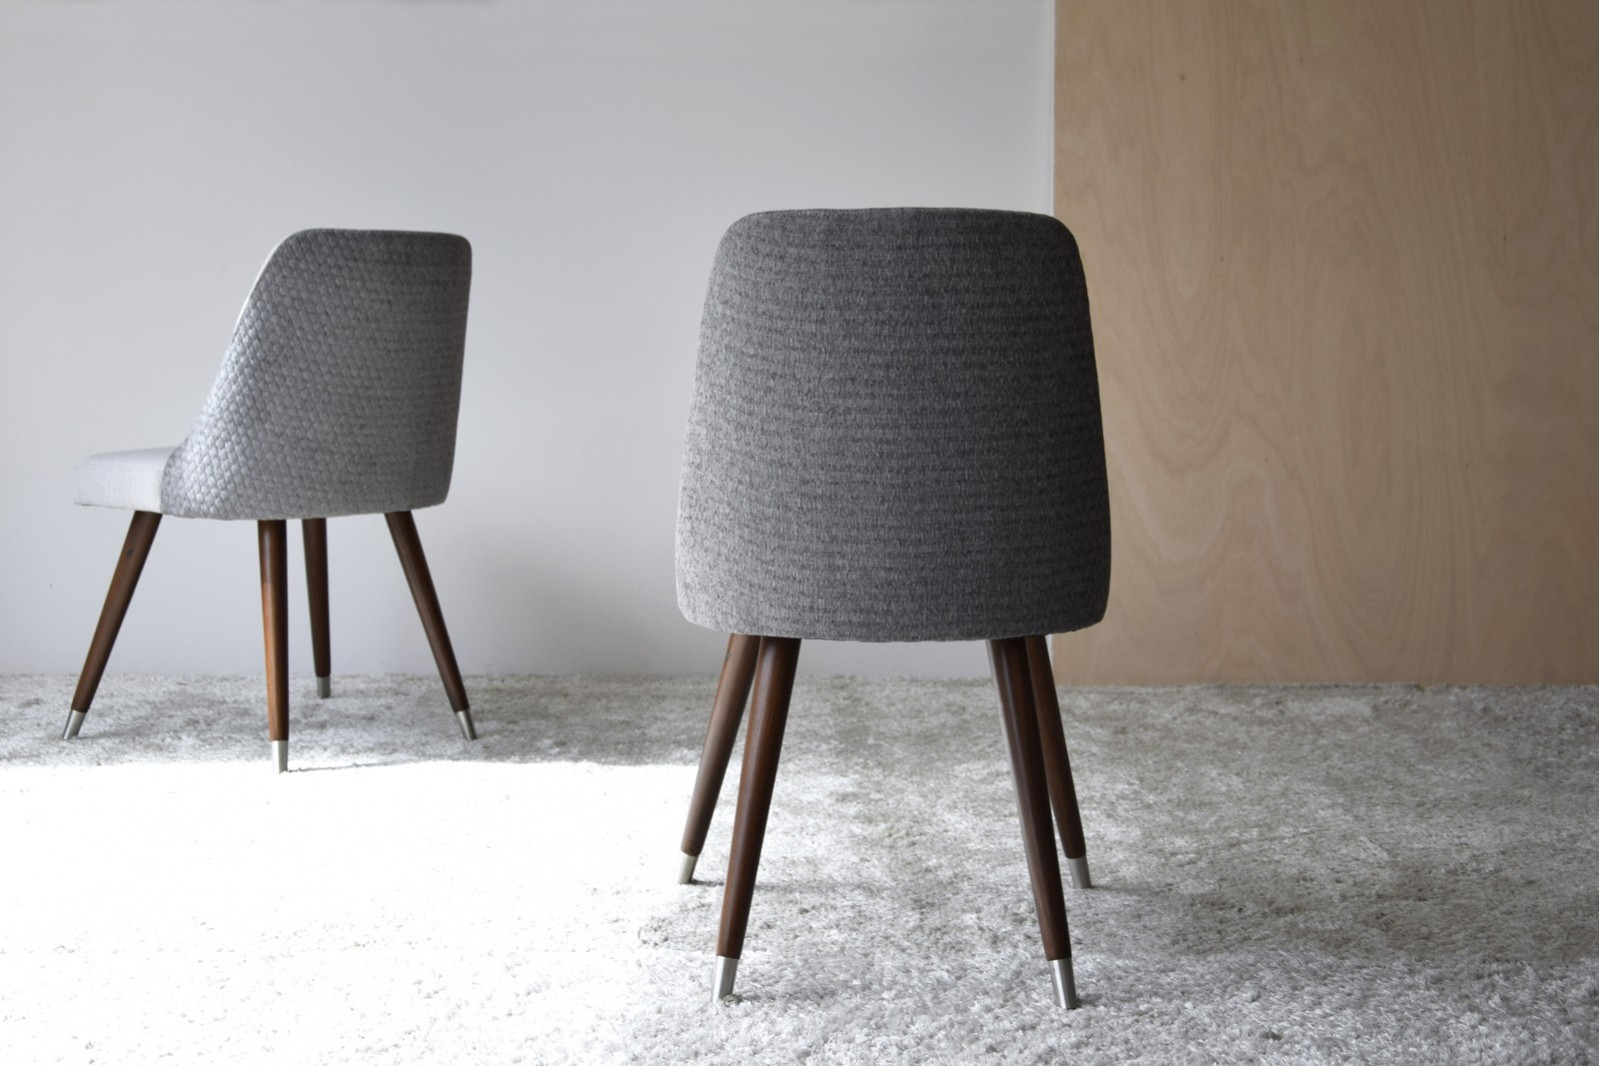 SET 2 DINING CHAIRS. GREY COLOR WOODEN LEGS